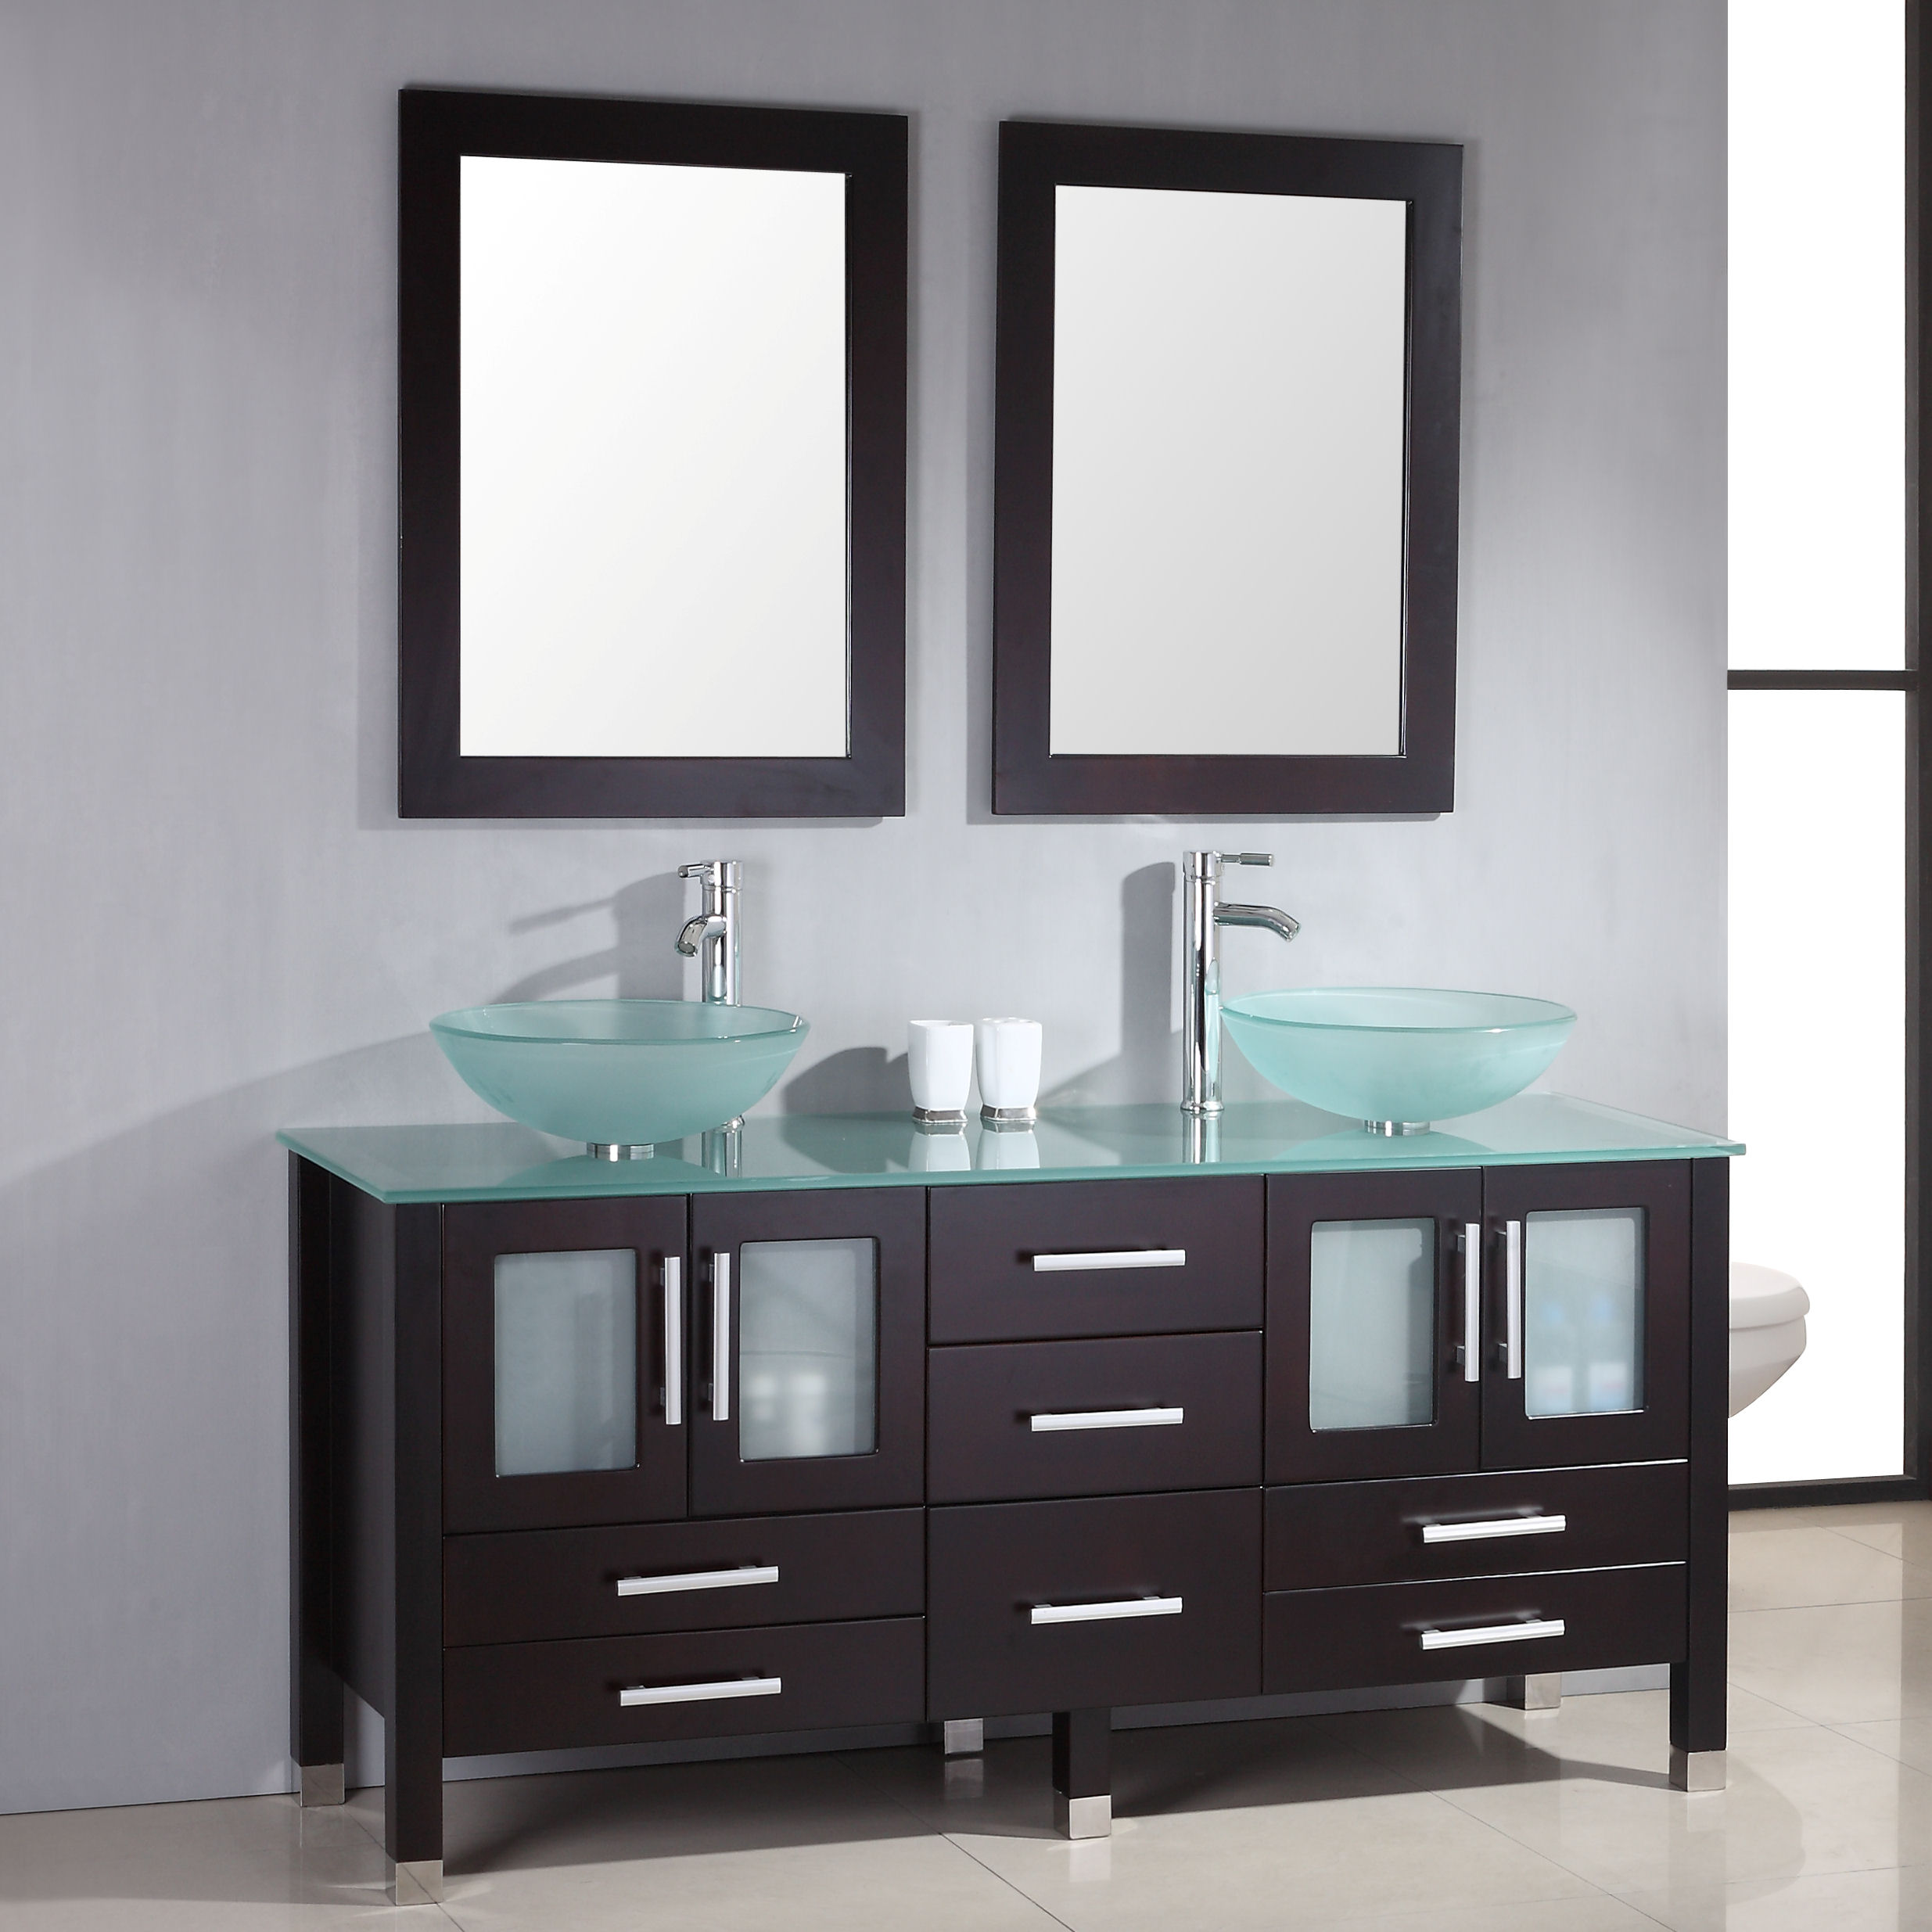 71 inch Contemporary Glass Top Double Vessel Sink Vanity. Cambridge 71 inch Glass Double Vessel Sink with Glass Counter top